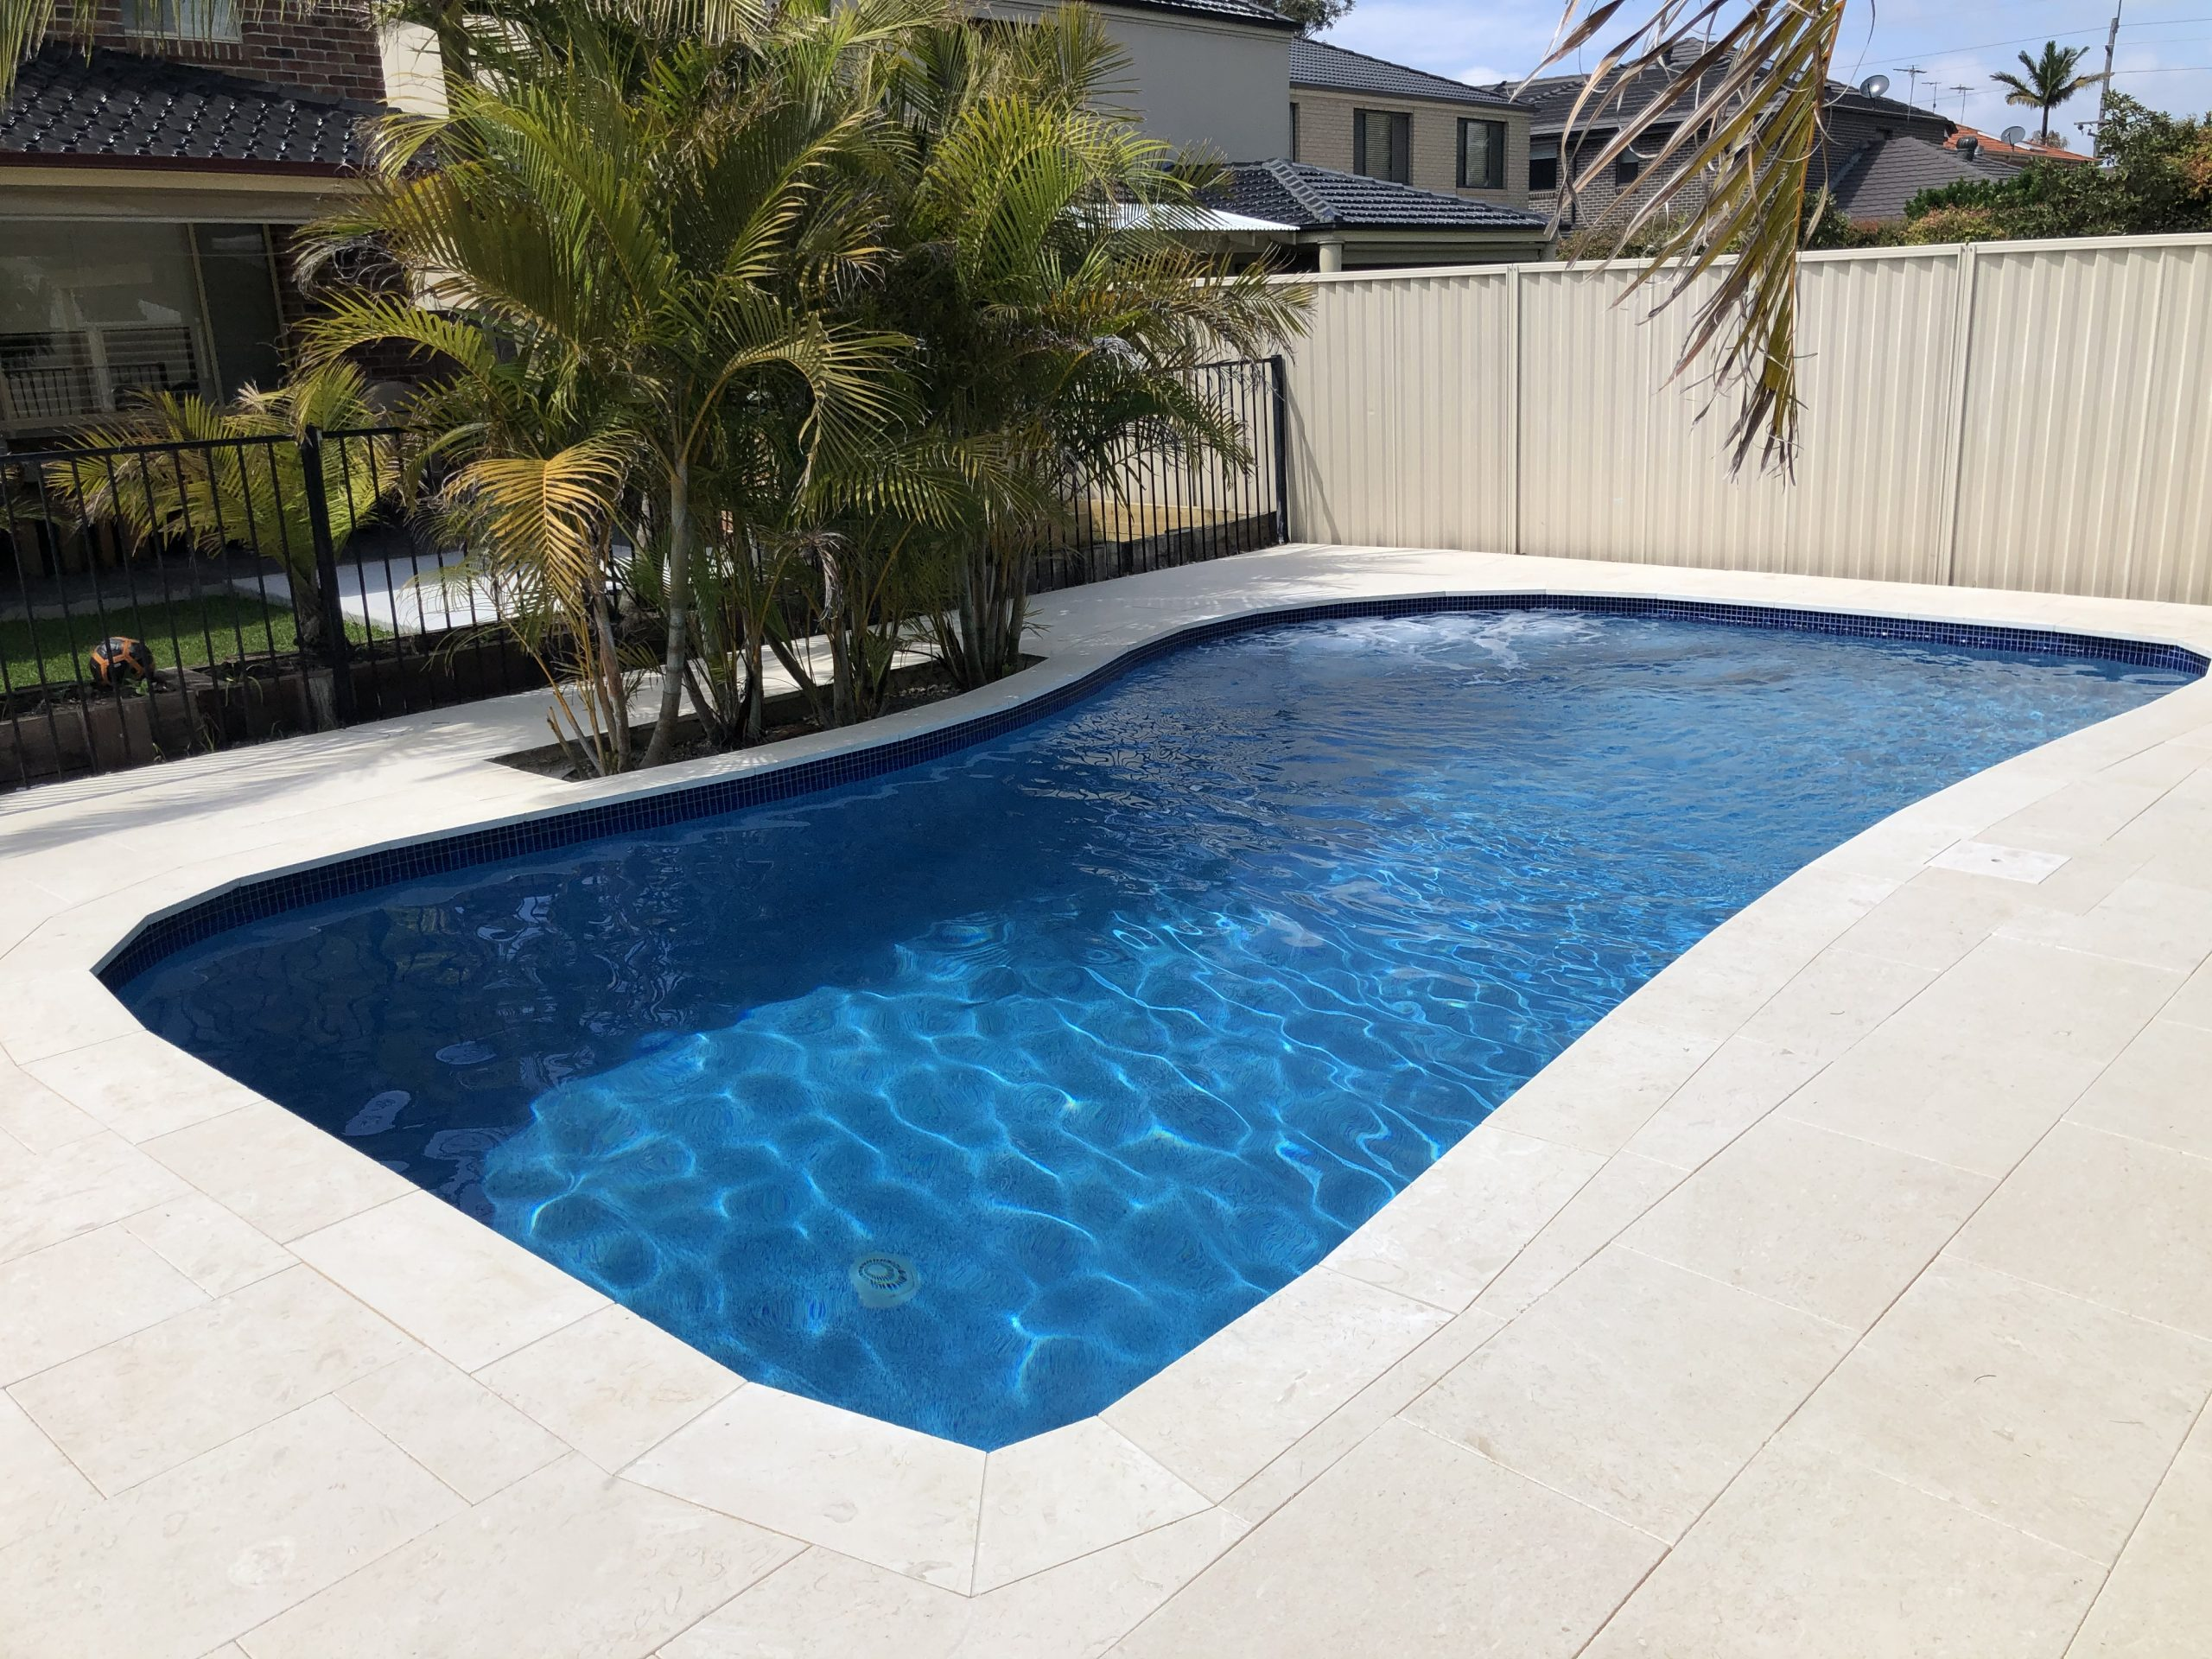 Palm tree pool renovation with new tiles and dark blue beadcrete water.